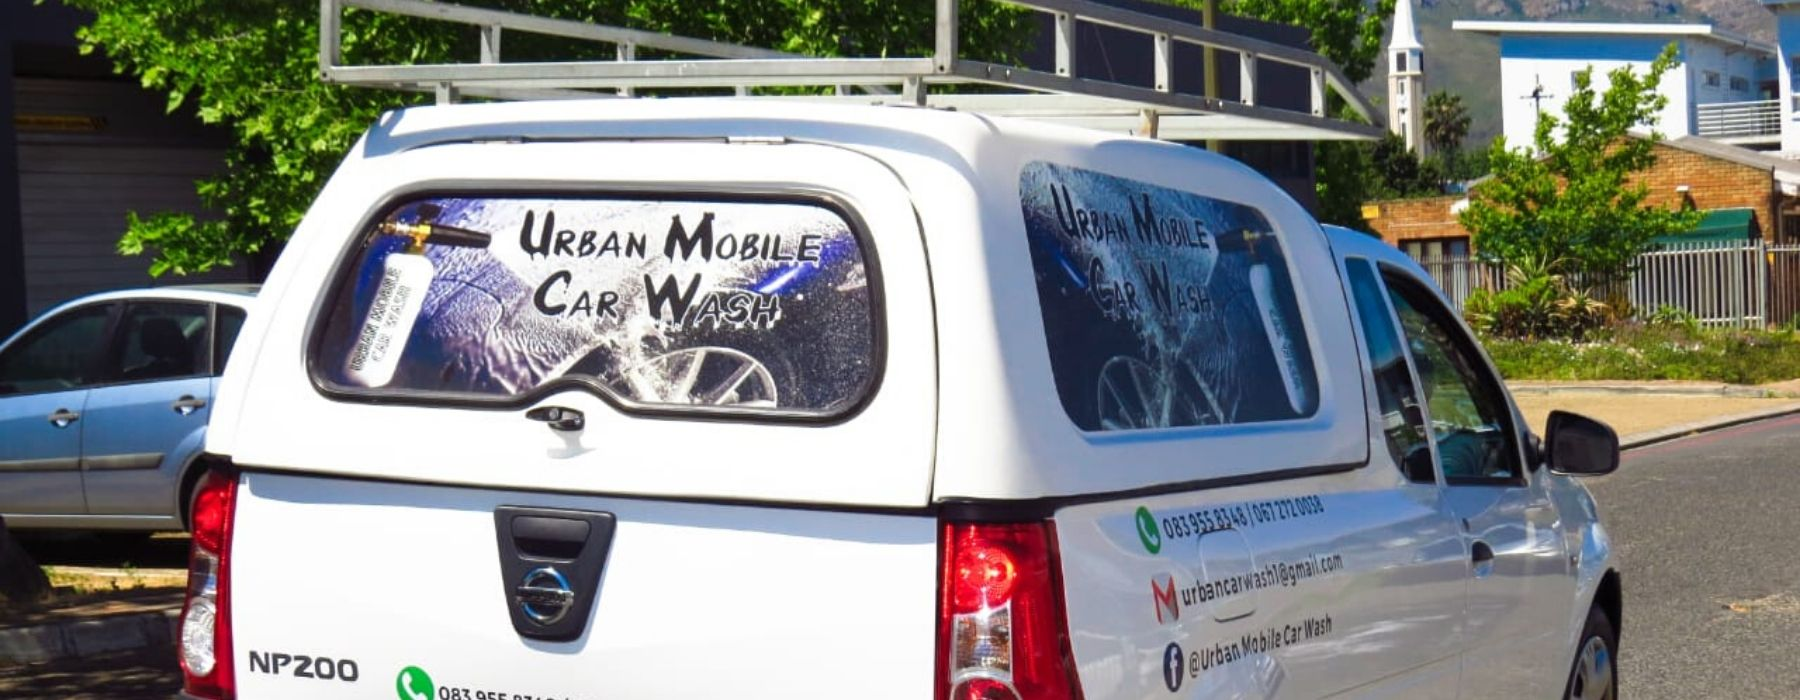 WELCOME TO URBAN MOBILE CAR WASH